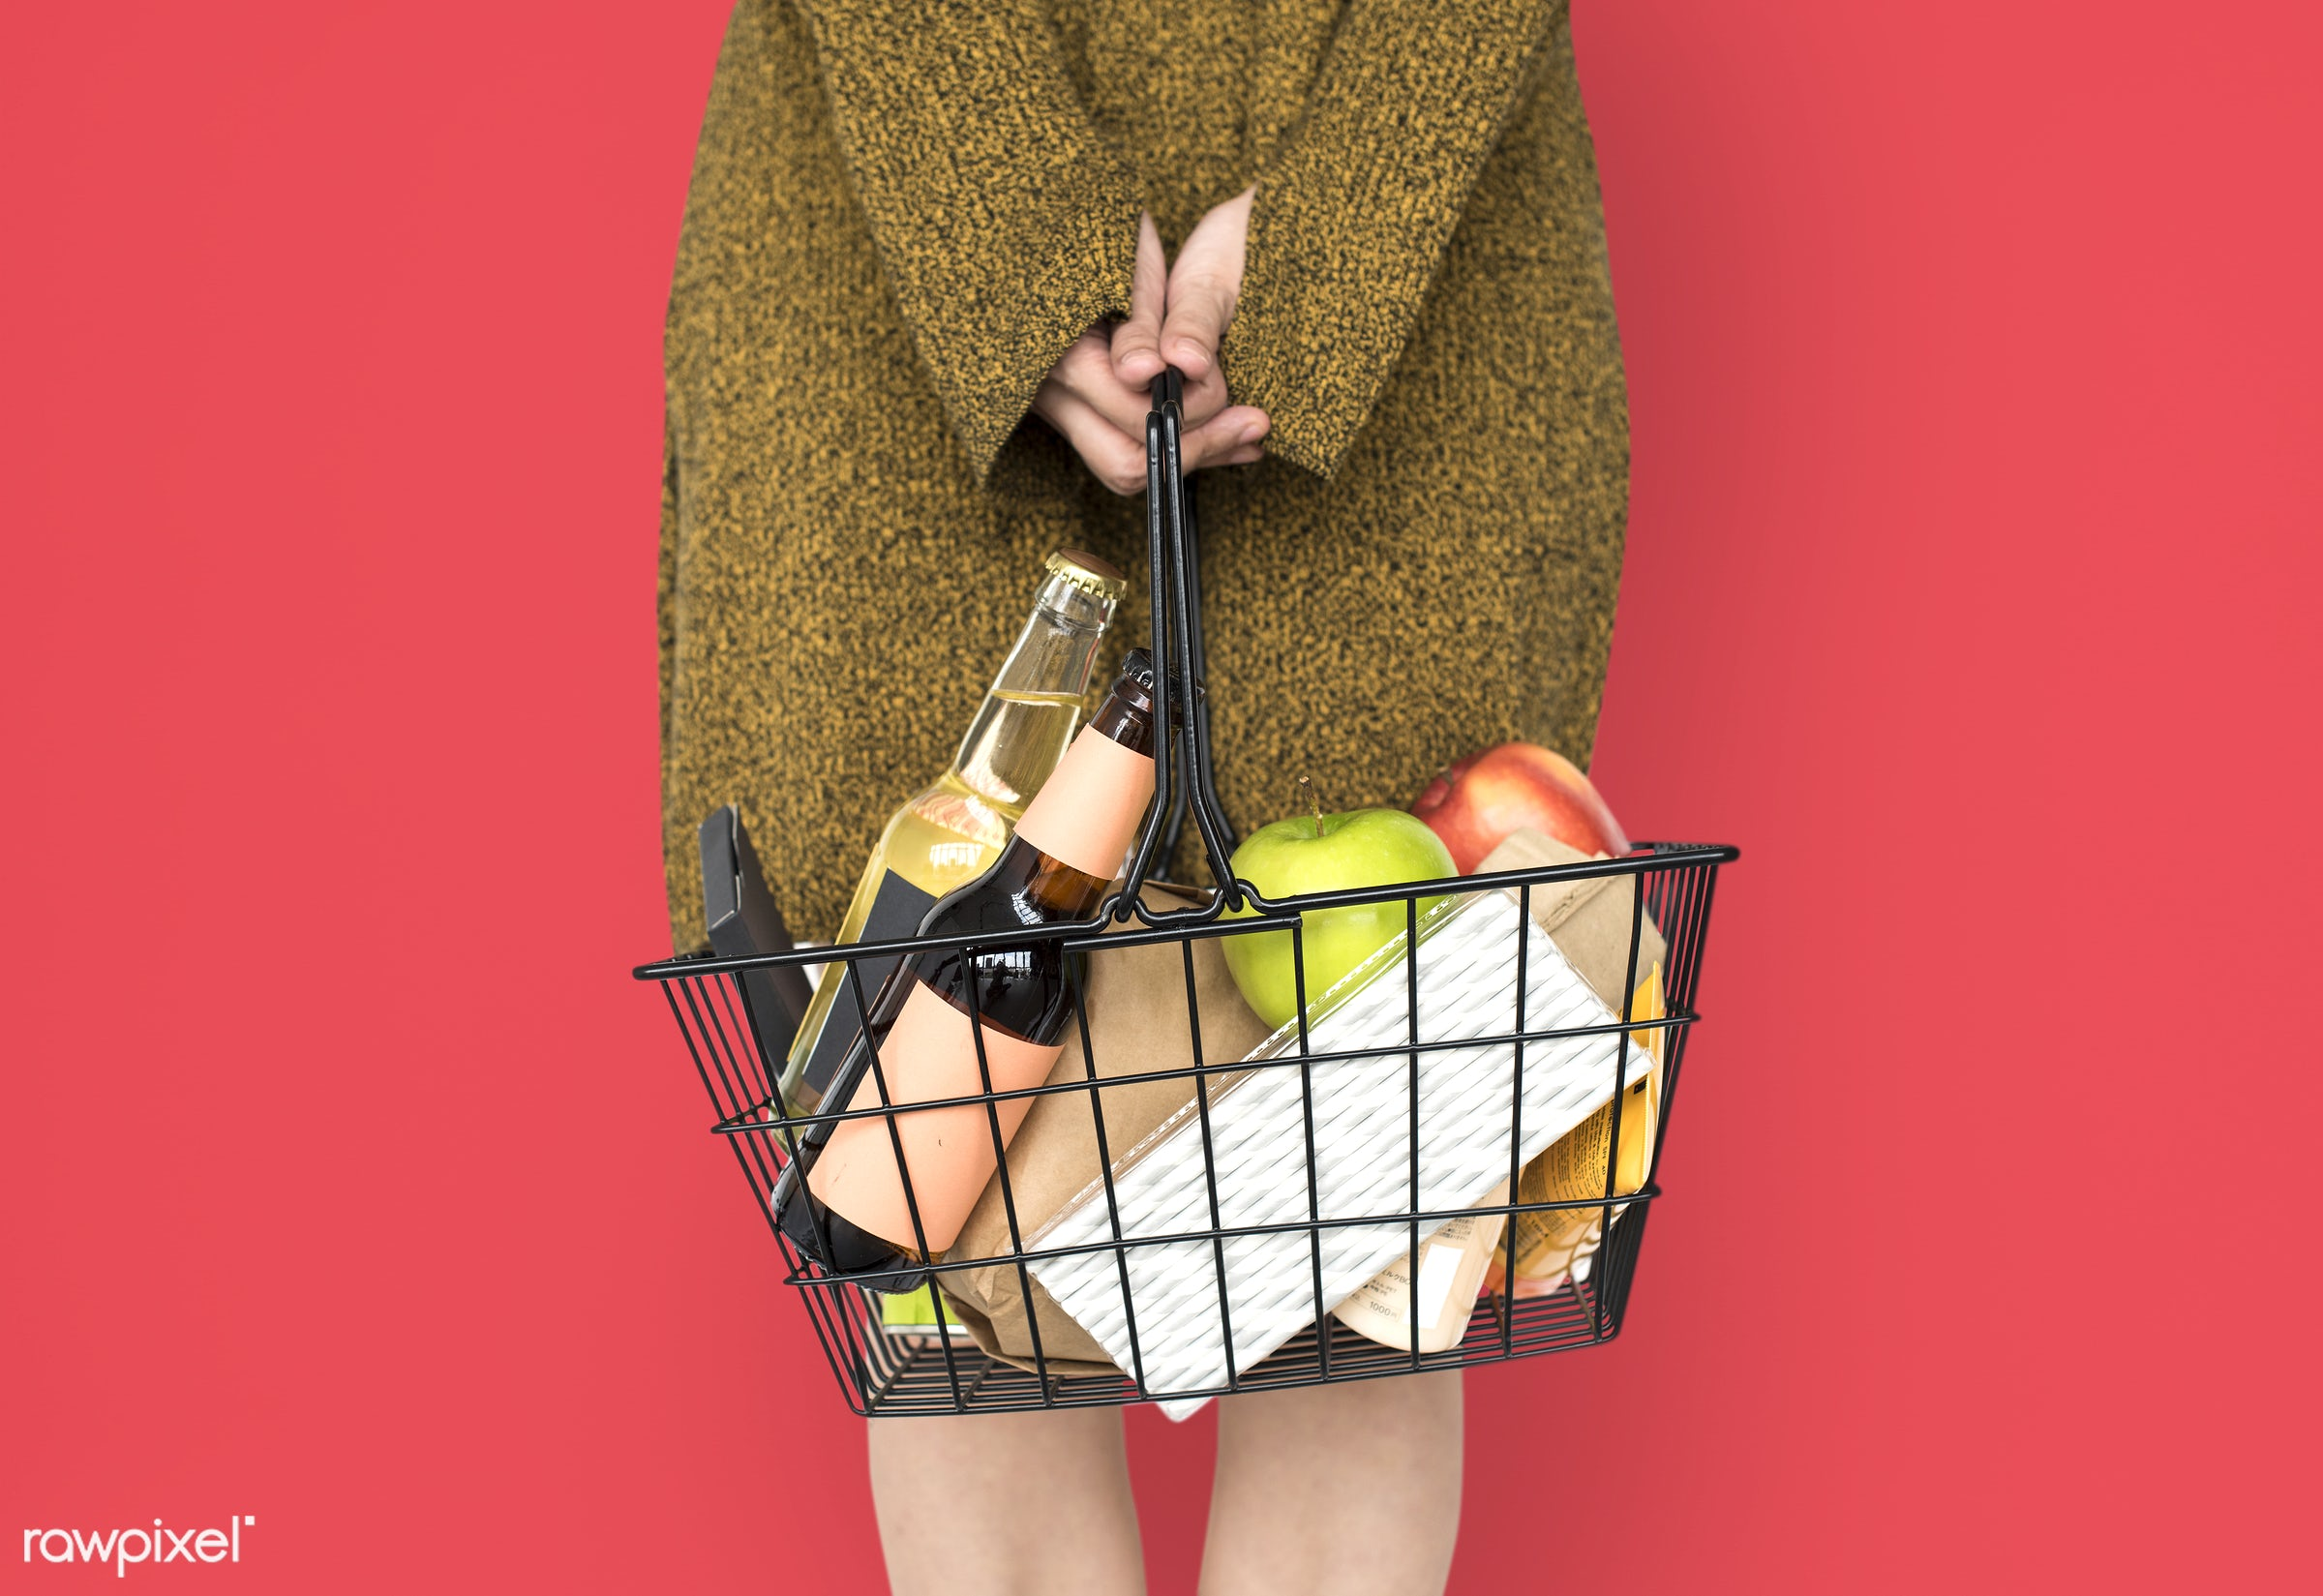 grocery, studio, person, goods, drinks, people, girl, carrying, solo, woman, casual, wine, isolated, fruit, household, adult...